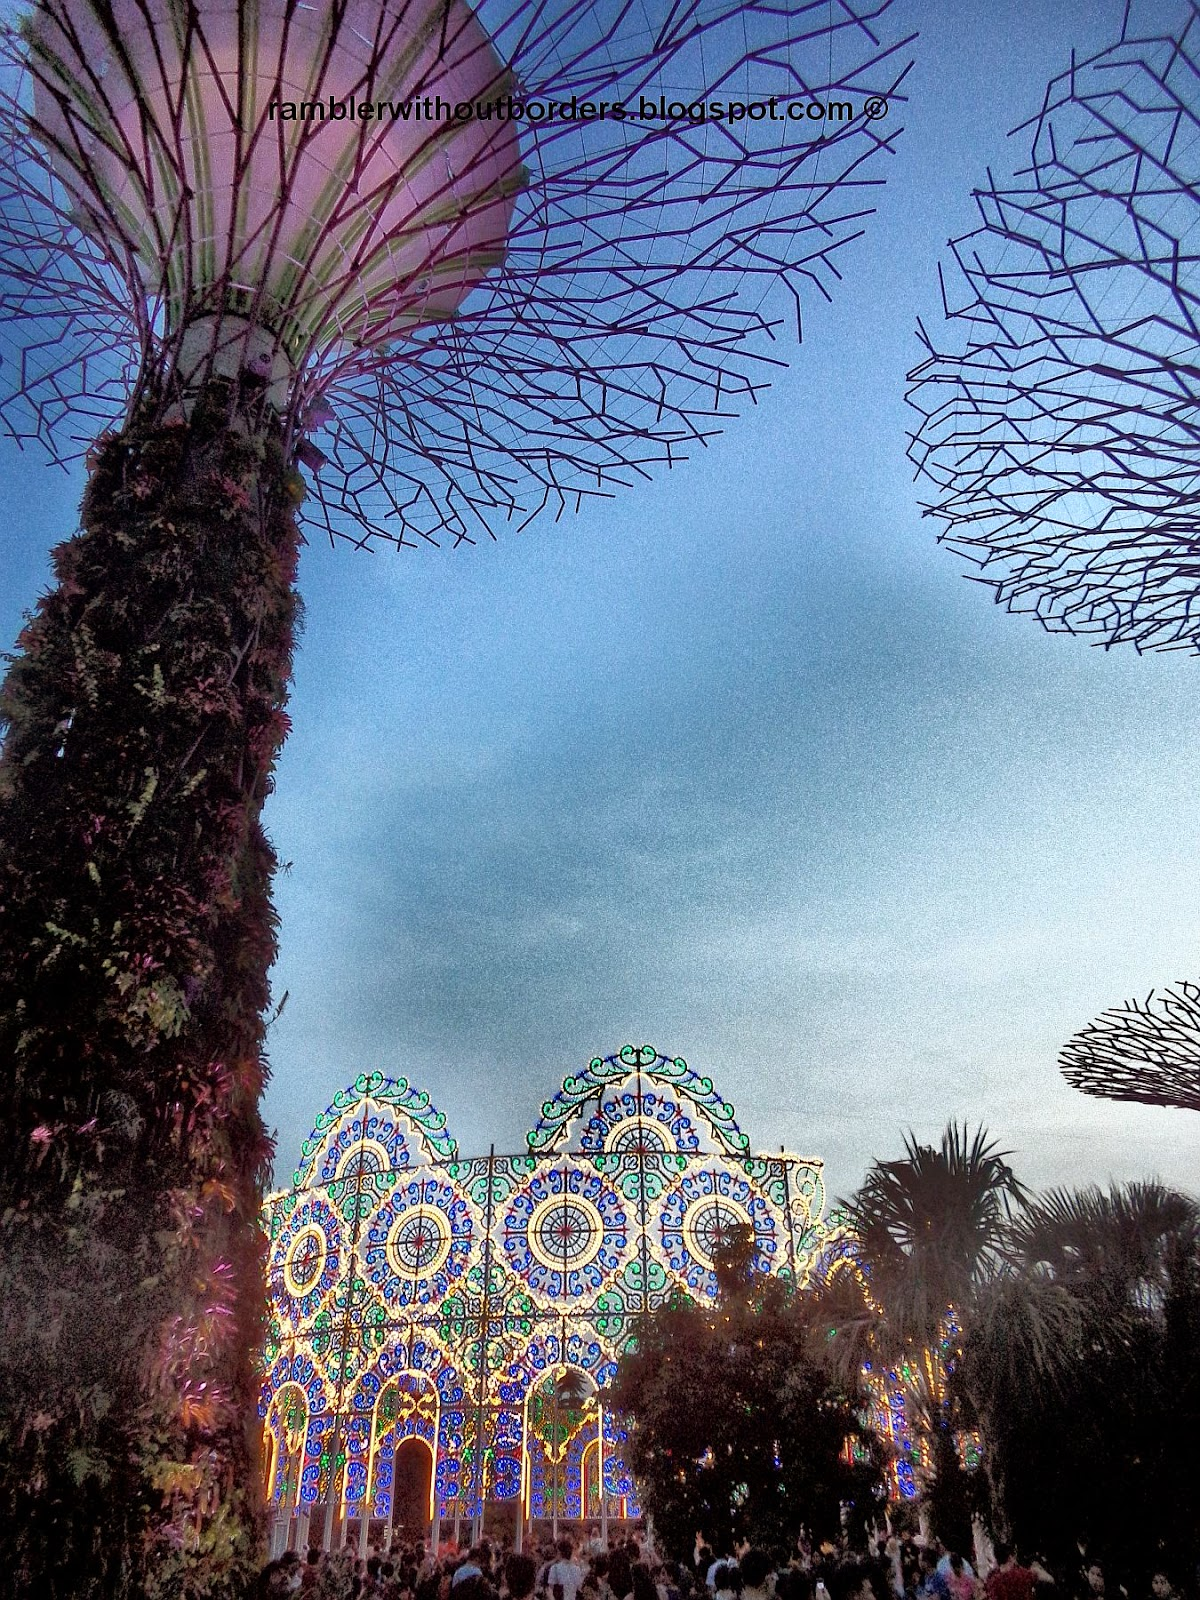 Christmas installation/displays, Gardens by the Bay, Singapore